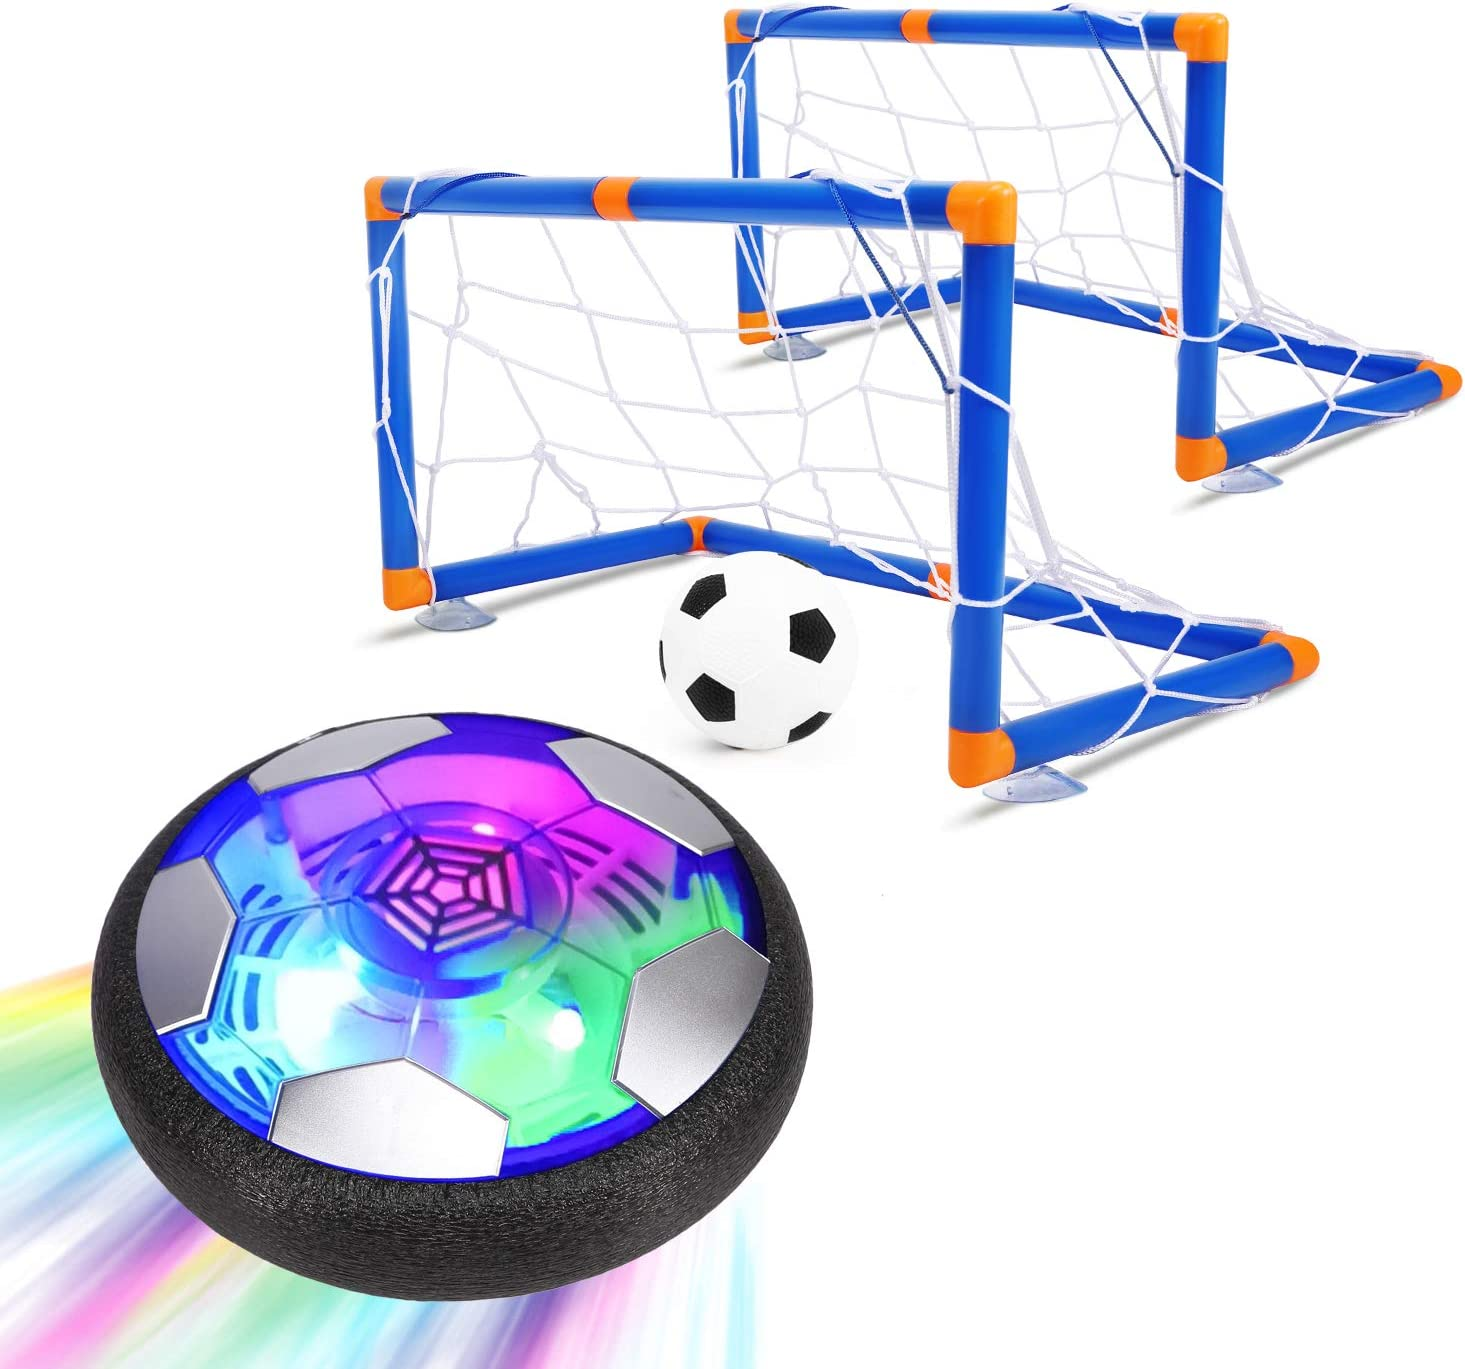 2020 Version Growsland 2 in 1 Starlight Hover Soccer Ball Set with 2 Goals Kid Projector Toys Rechargeable Air Soccer with LED Light /& Foam Bumper Outdoor Indoor Toy Ideal Gift for Toddler Boy Girl